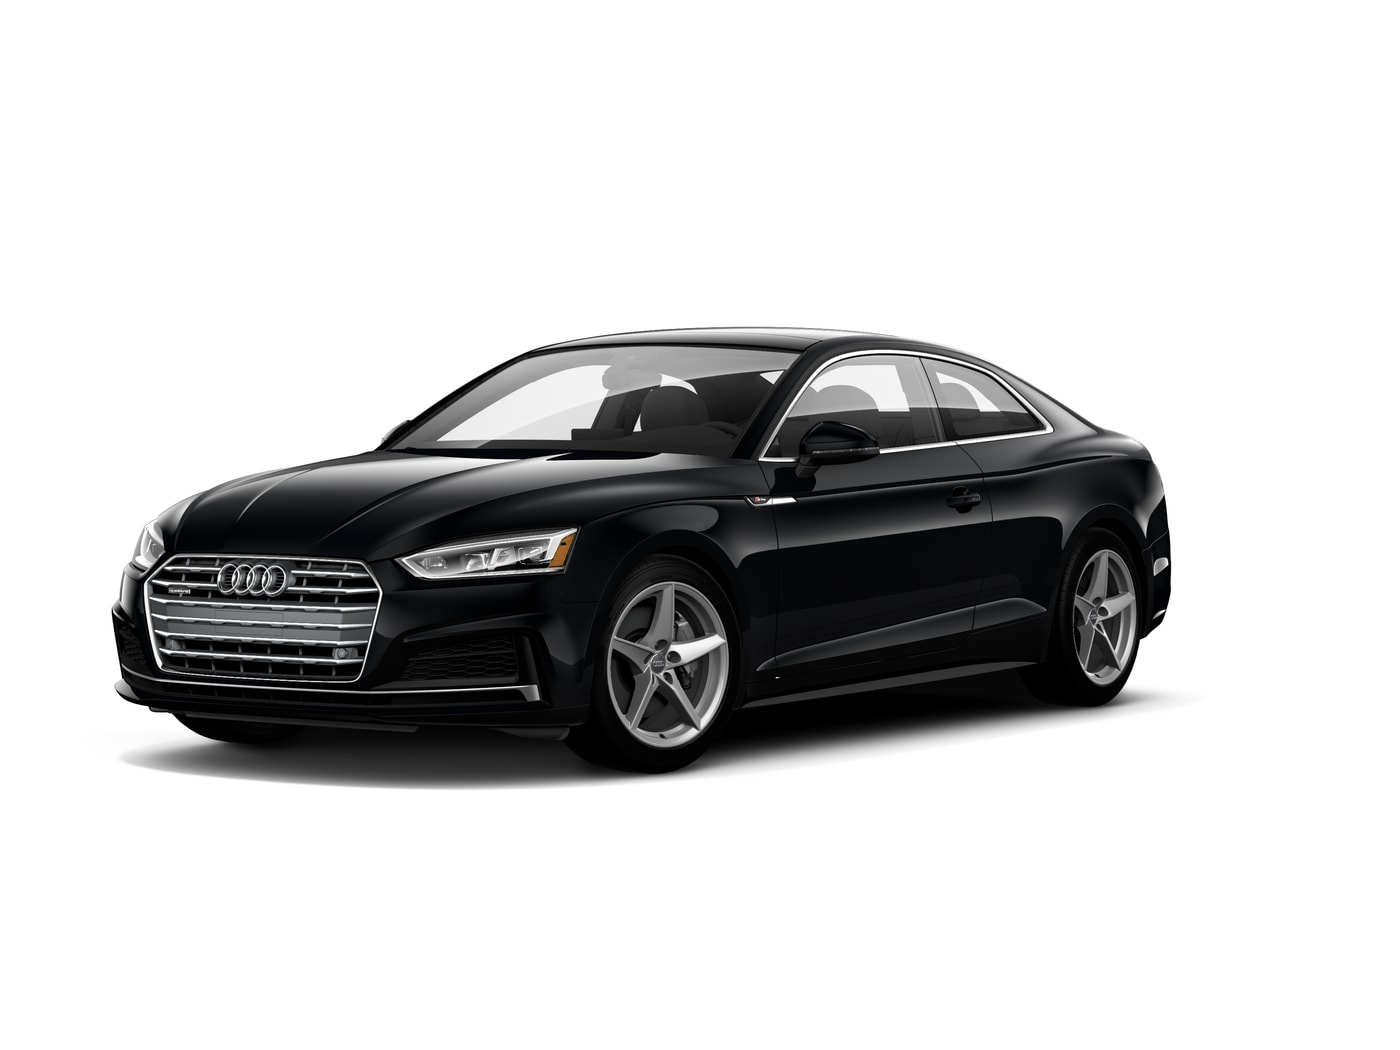 2019 Audi A5 vs. 2019 Honda Civic